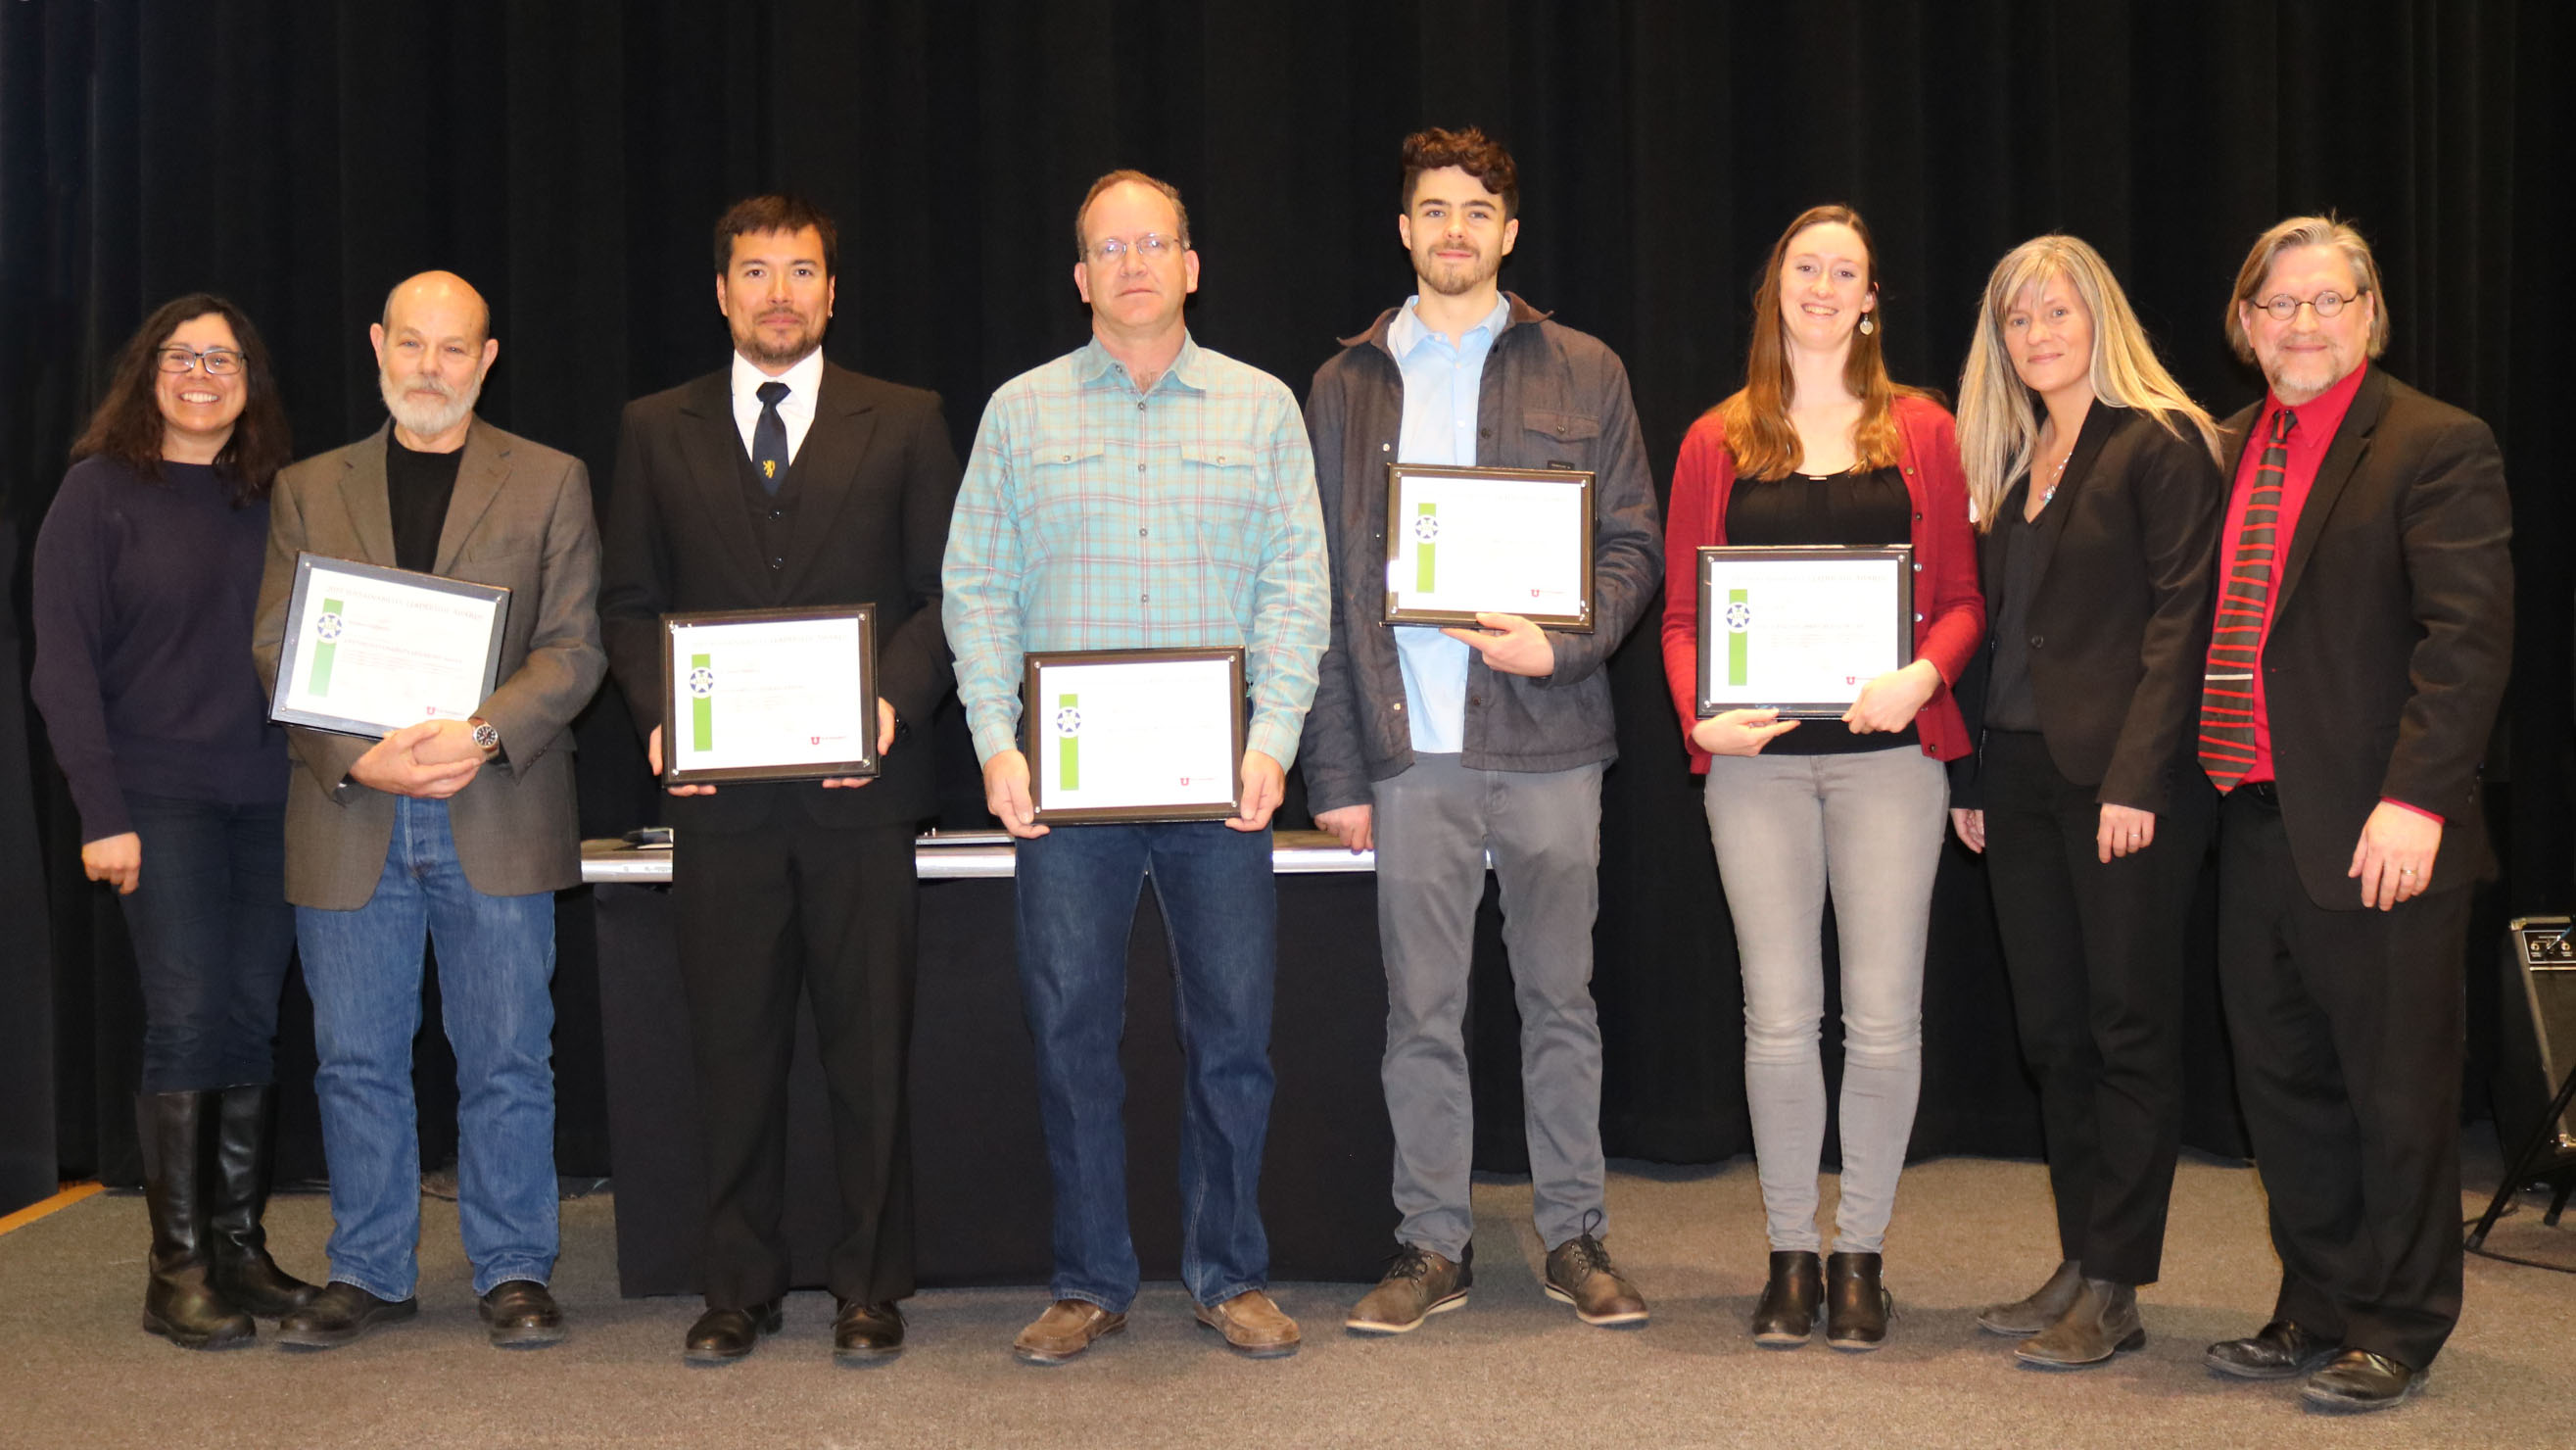 A group of 8 faculty, staff and students stand on a stage holding their Sustainability Leadership Award plaques.